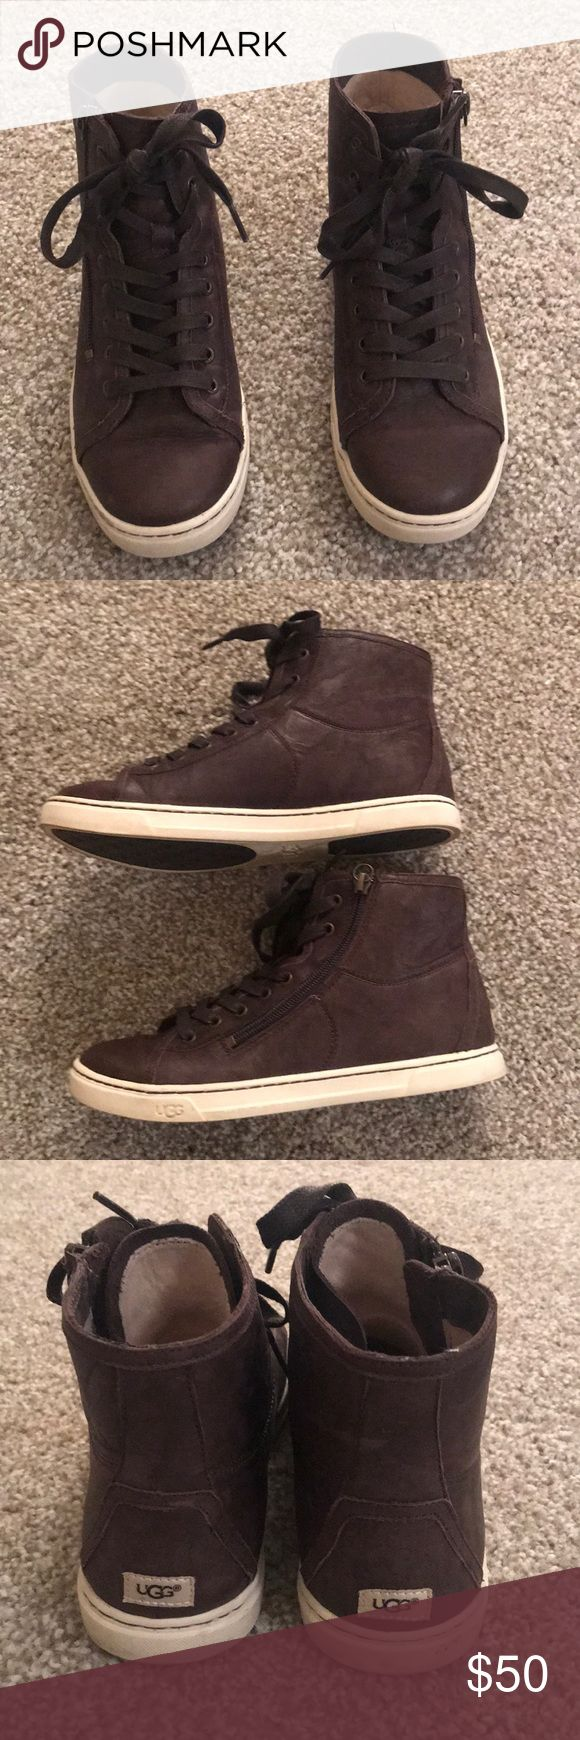 Brown Ugg Sneakers/booties Really comfy brown hair ugh sneaker/booties with zipper on the side. UGG Shoes Ankle Boots & Booties